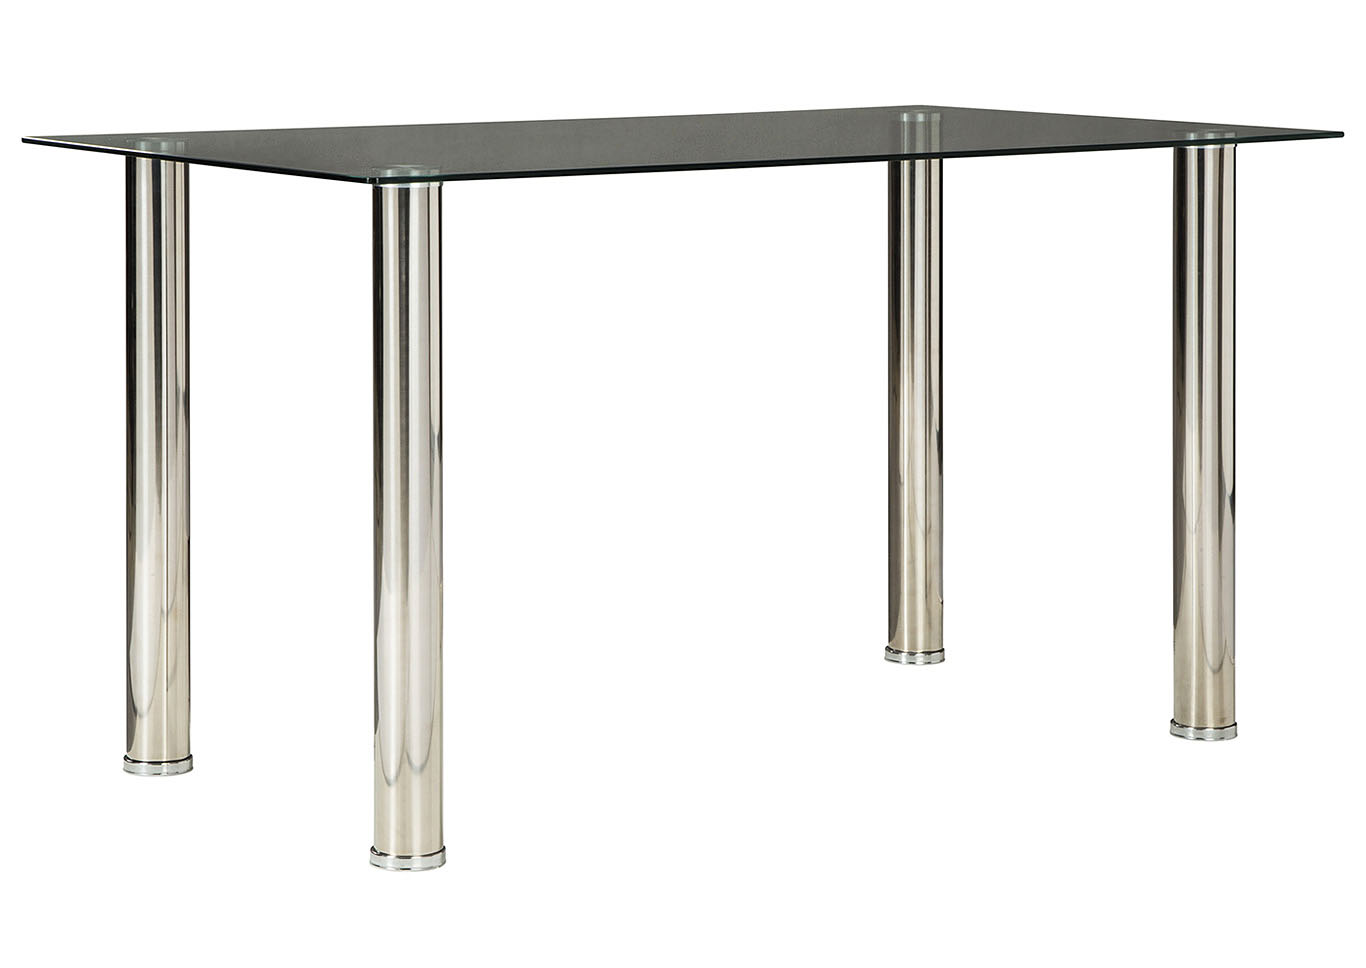 Sariden Chrome Finish Rectangular Dining Room Table,Signature Design By Ashley